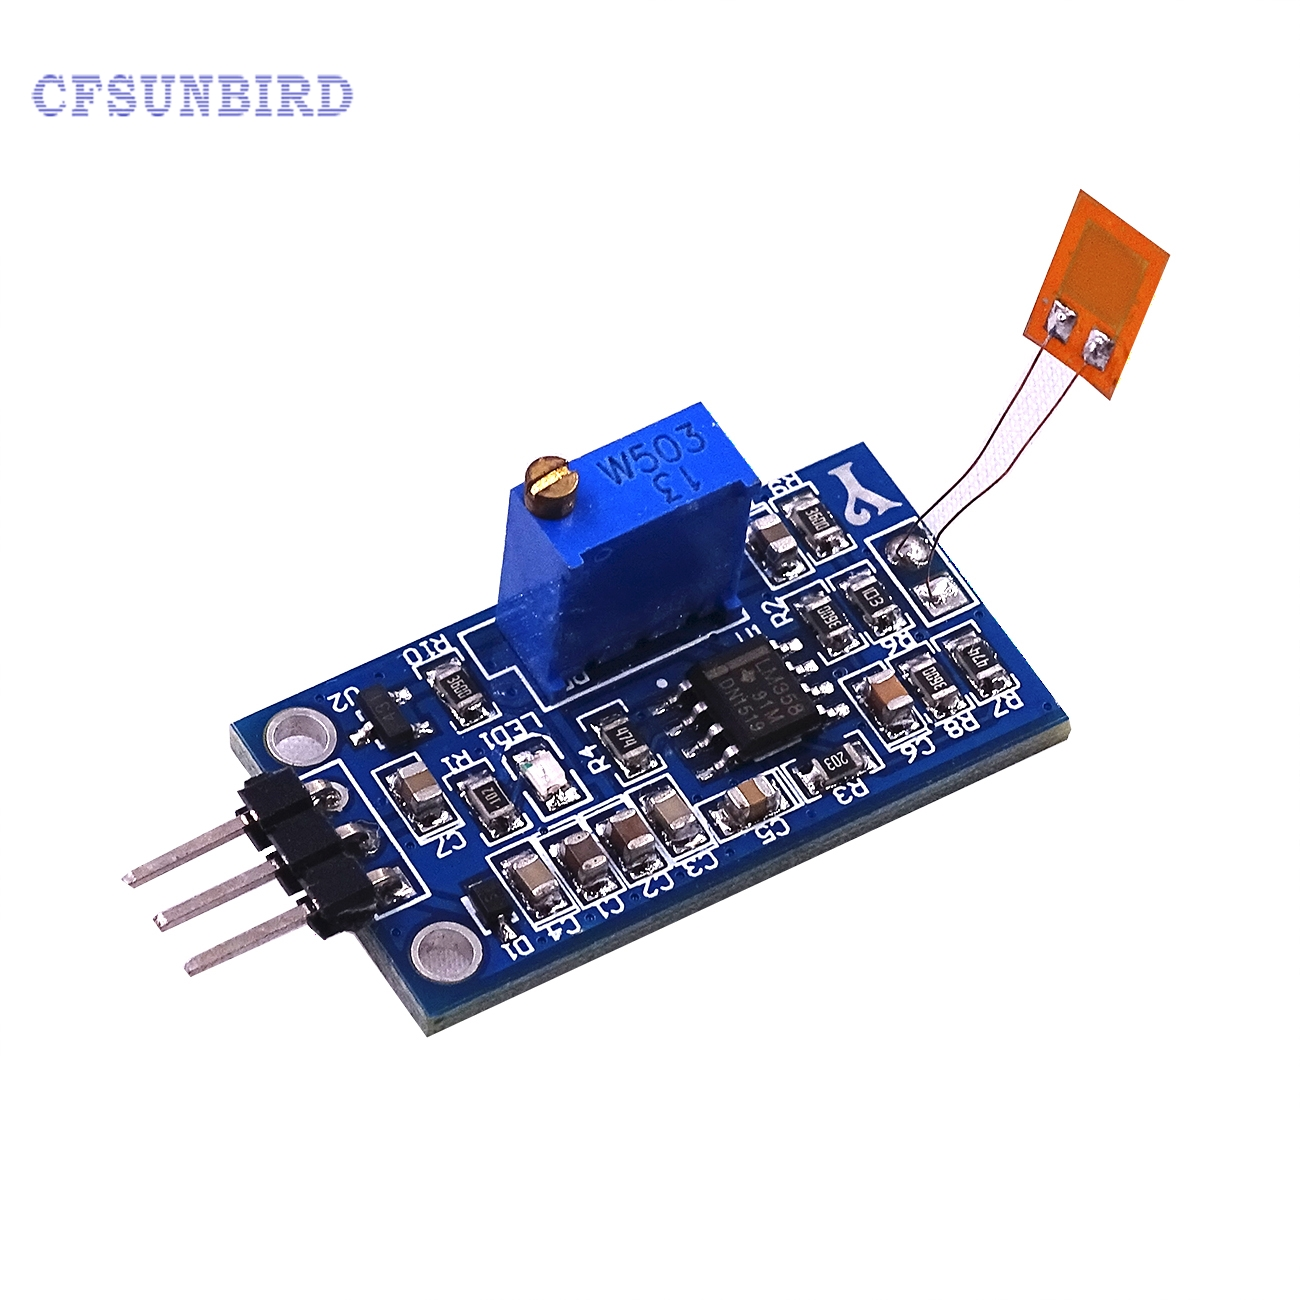 все цены на CFsunbird 1pcs Strain gauge bending sensor module Y3 weighing amplifier module send program information онлайн